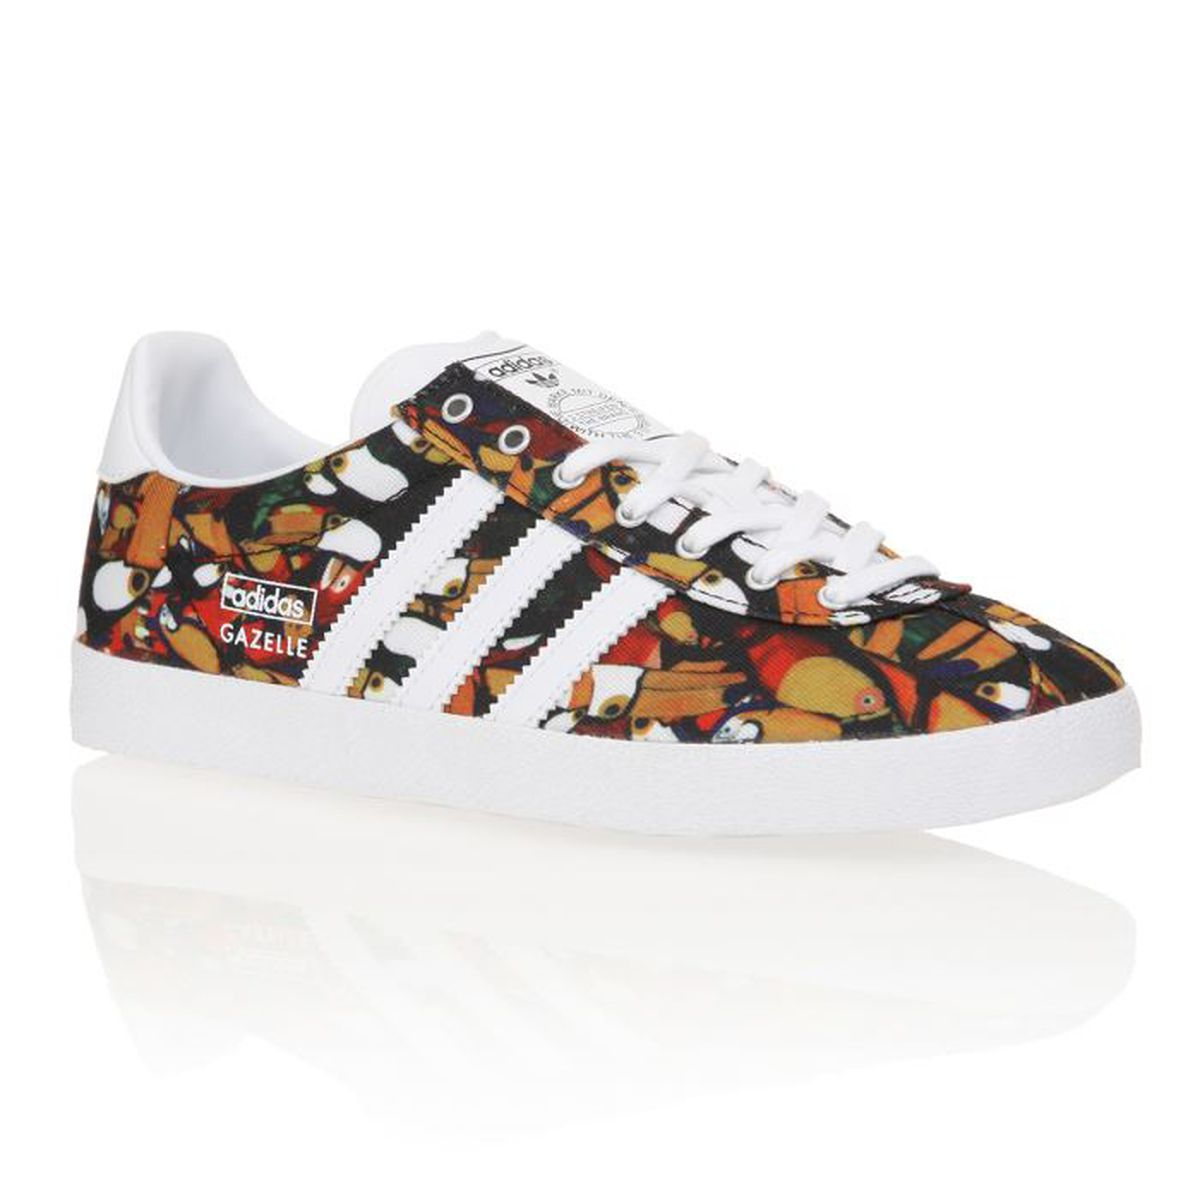 adidas originals baskets gazelle og femme femme jaune multicolore achat vente adidas. Black Bedroom Furniture Sets. Home Design Ideas